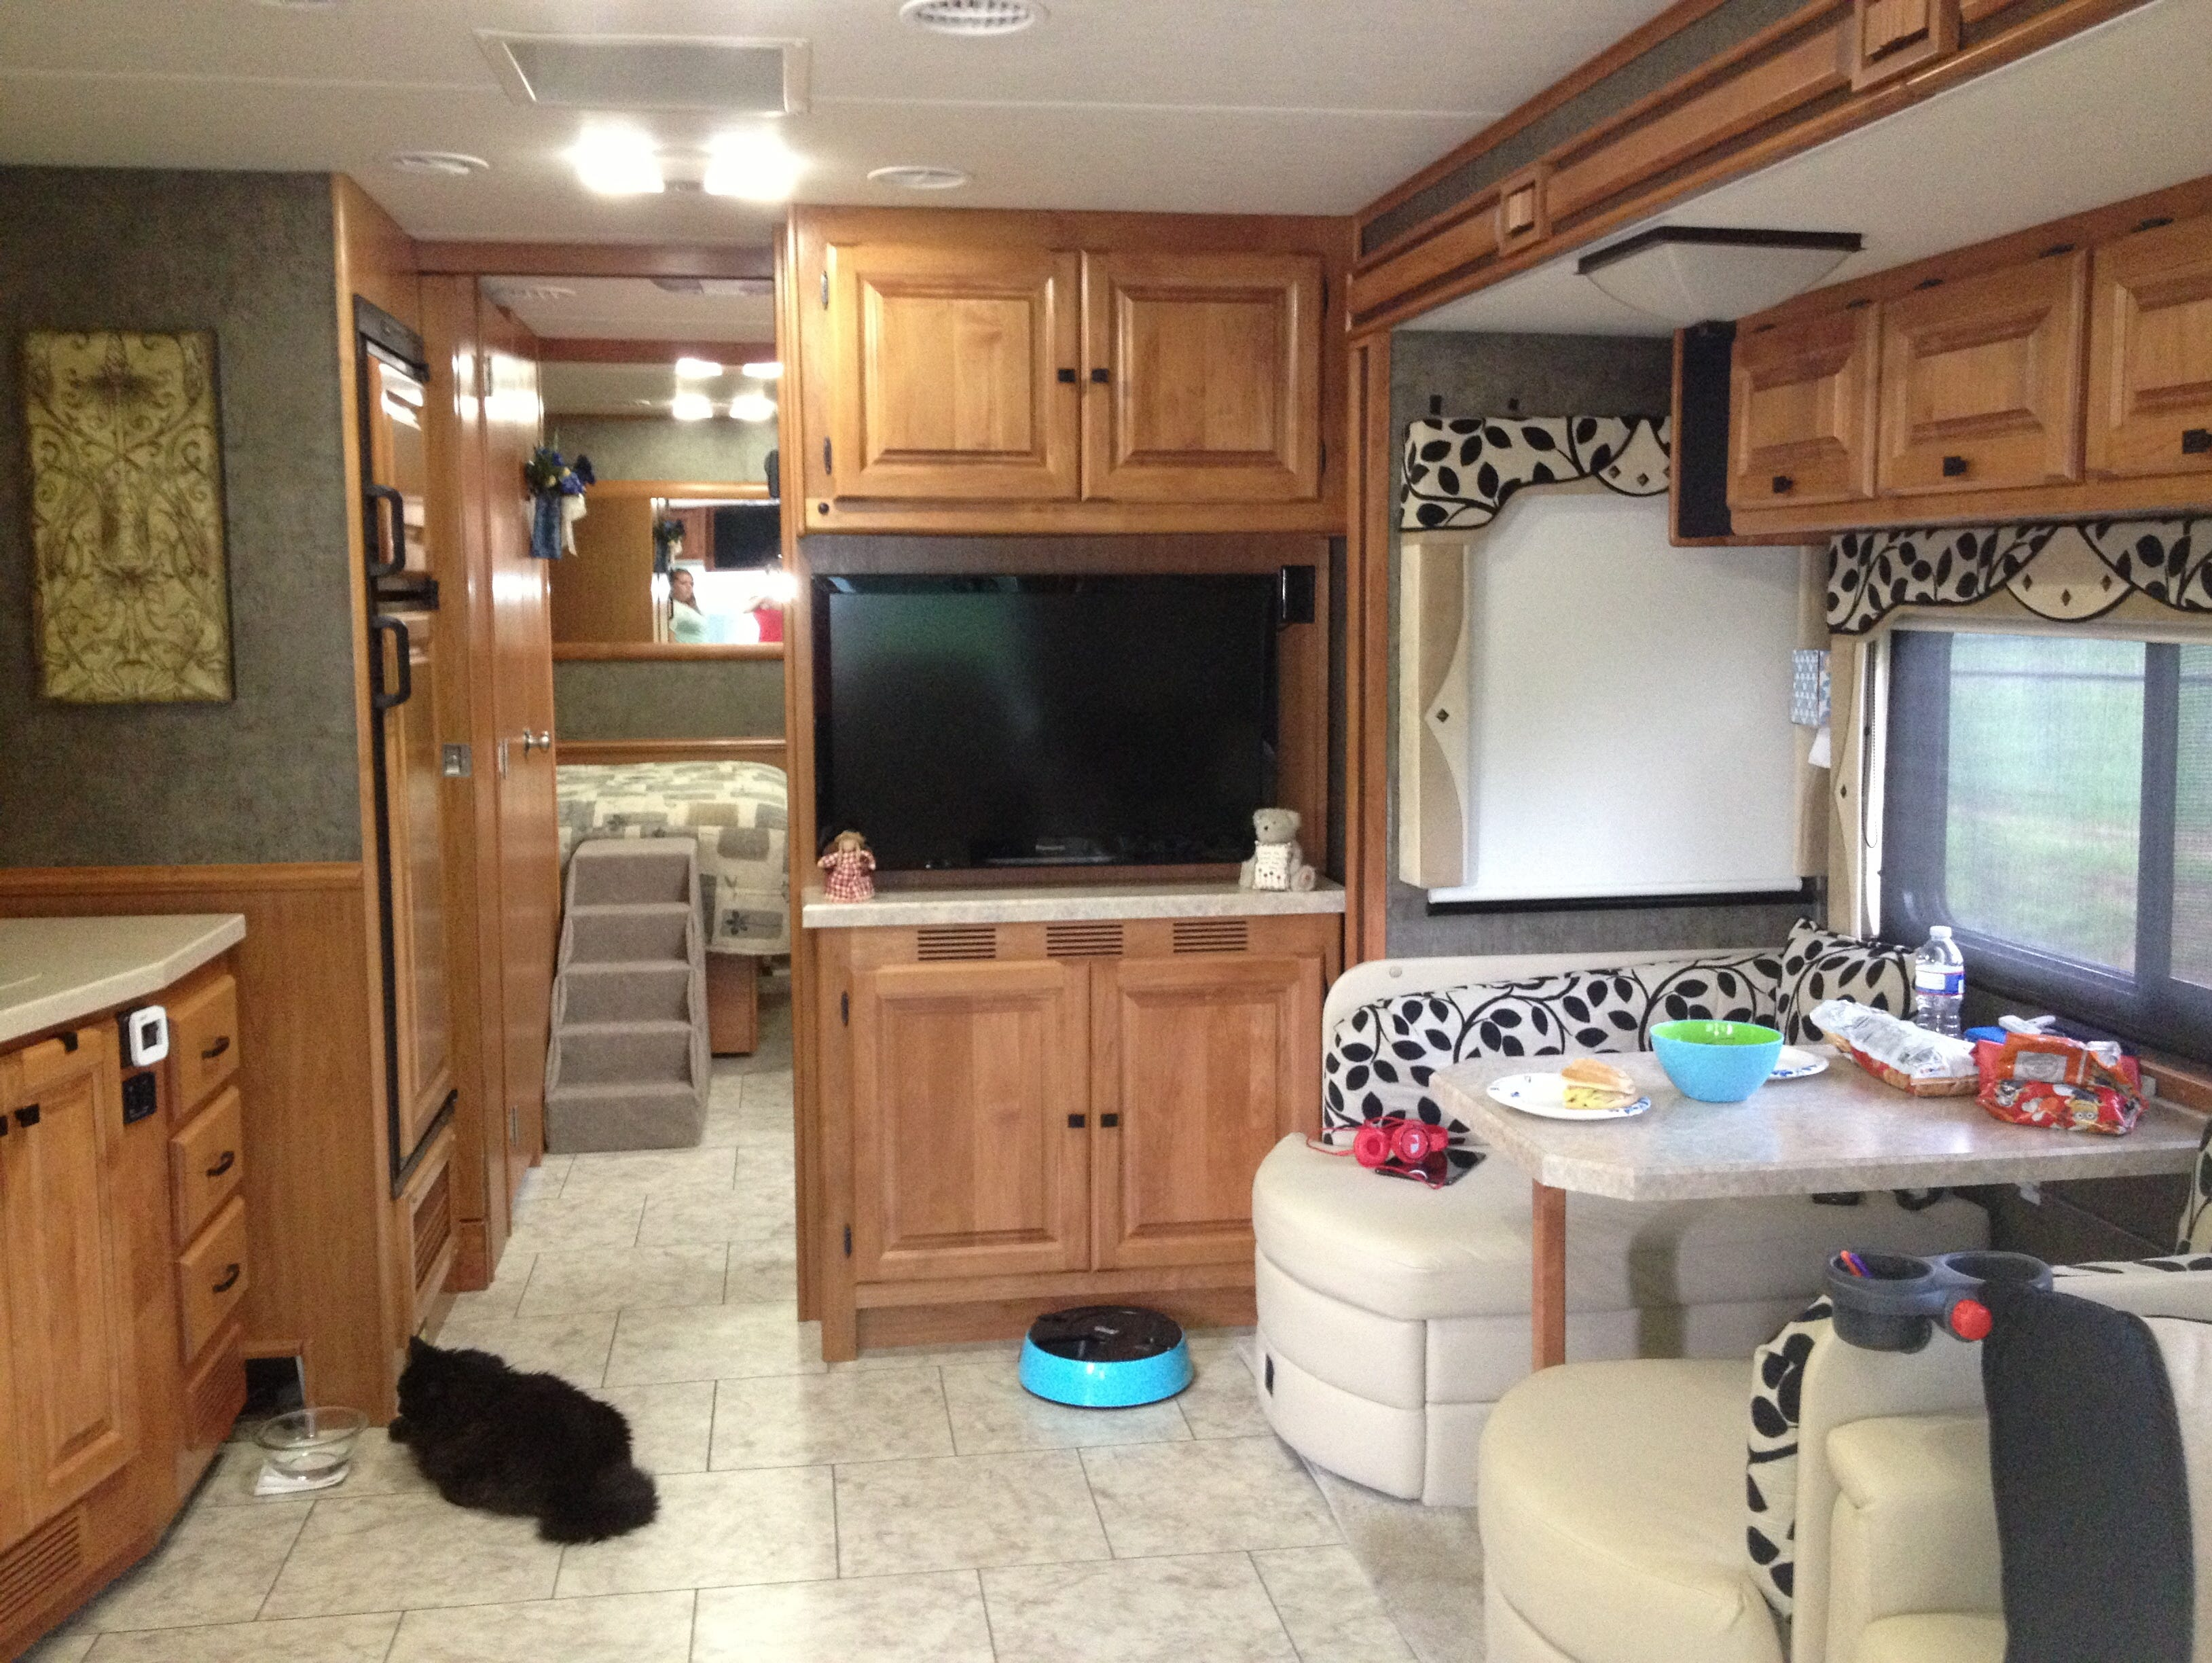 The interior of Carolyn and John Mitchell's motorhome. The couple travel with their cats, Heidi (pictured) and Smokey.